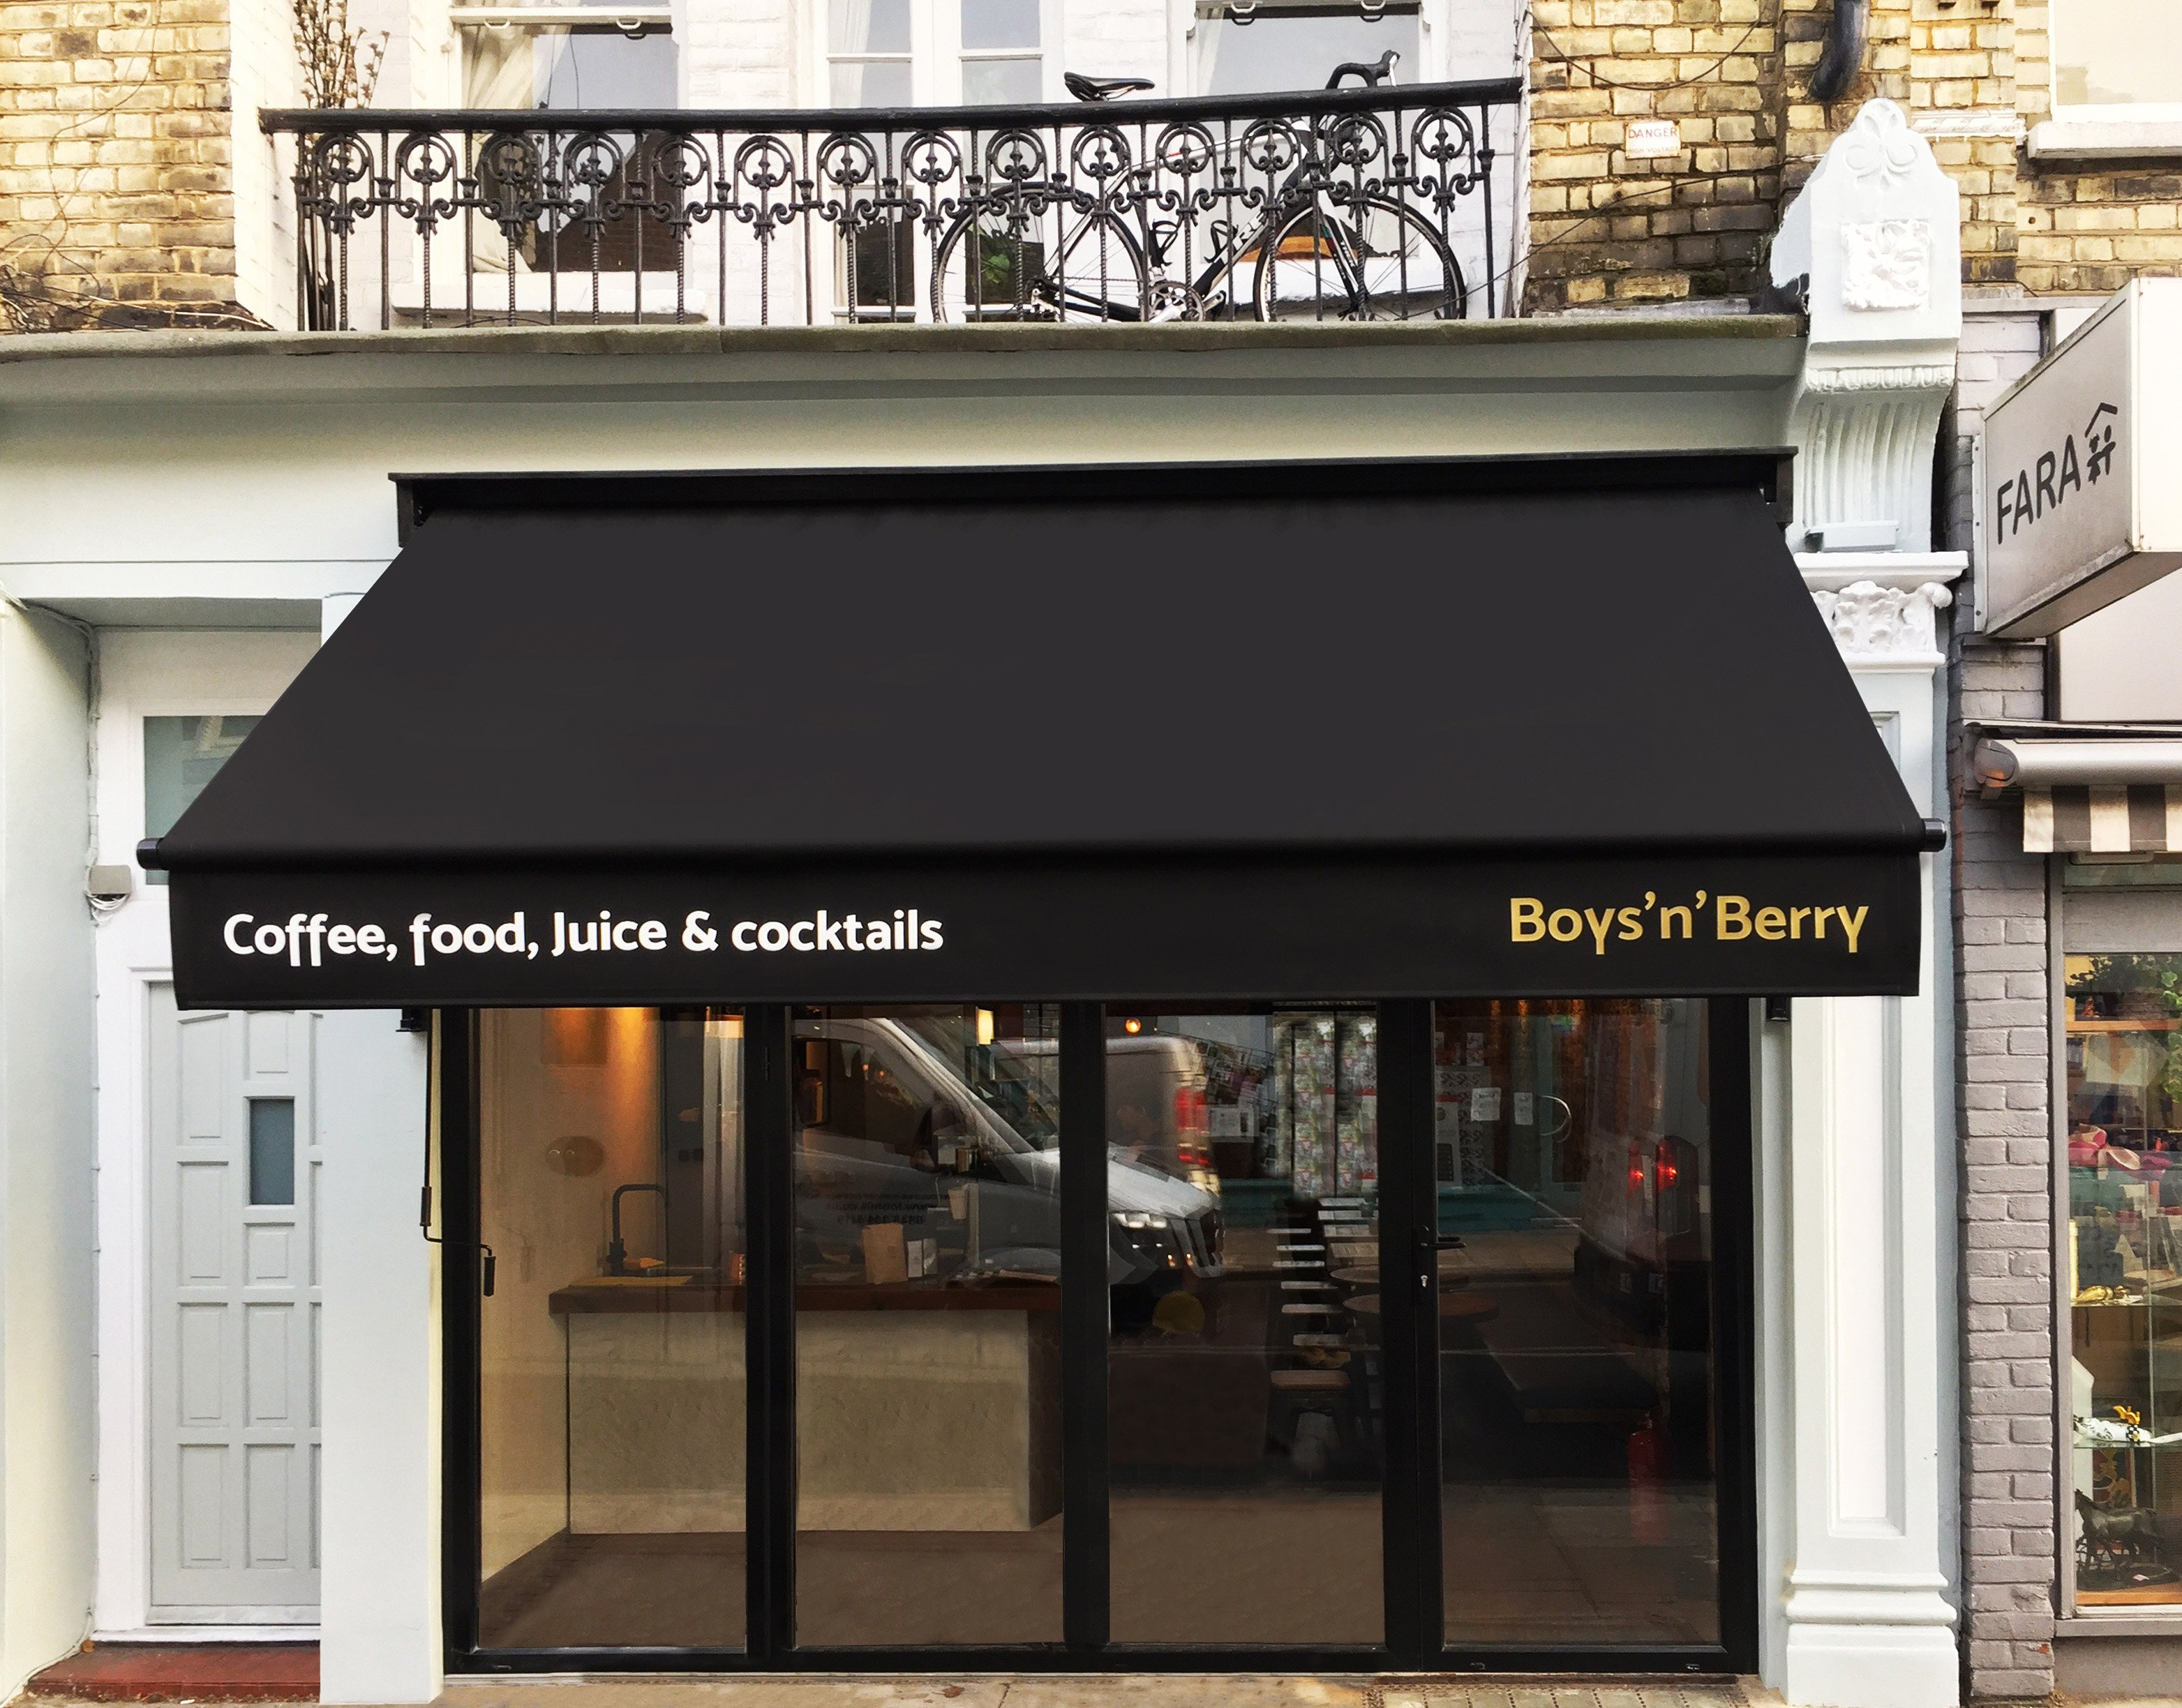 Awning boys n Berry